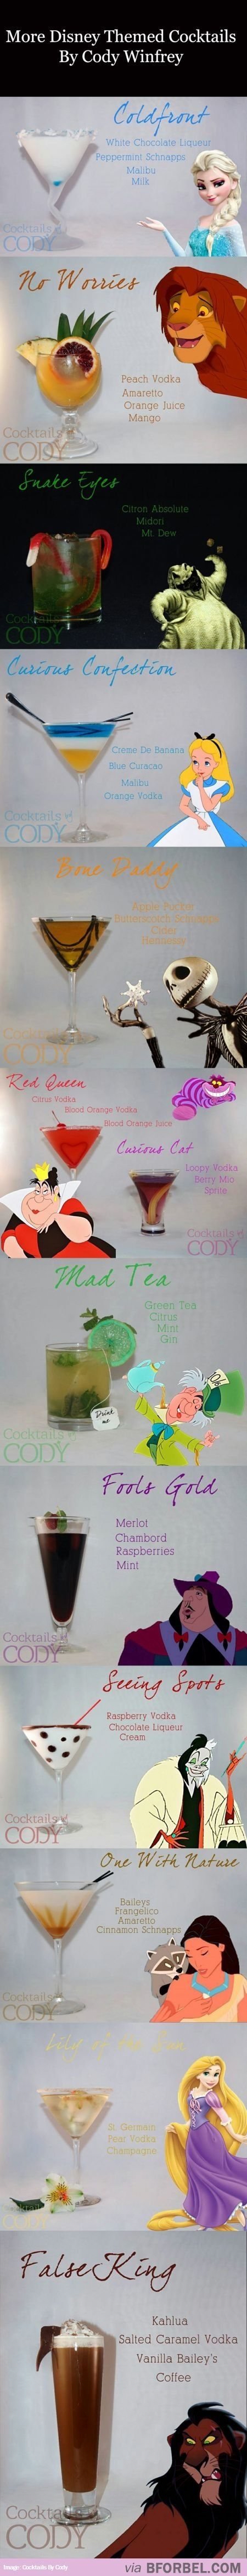 Cocktails According to Your Favorite Disney Movie